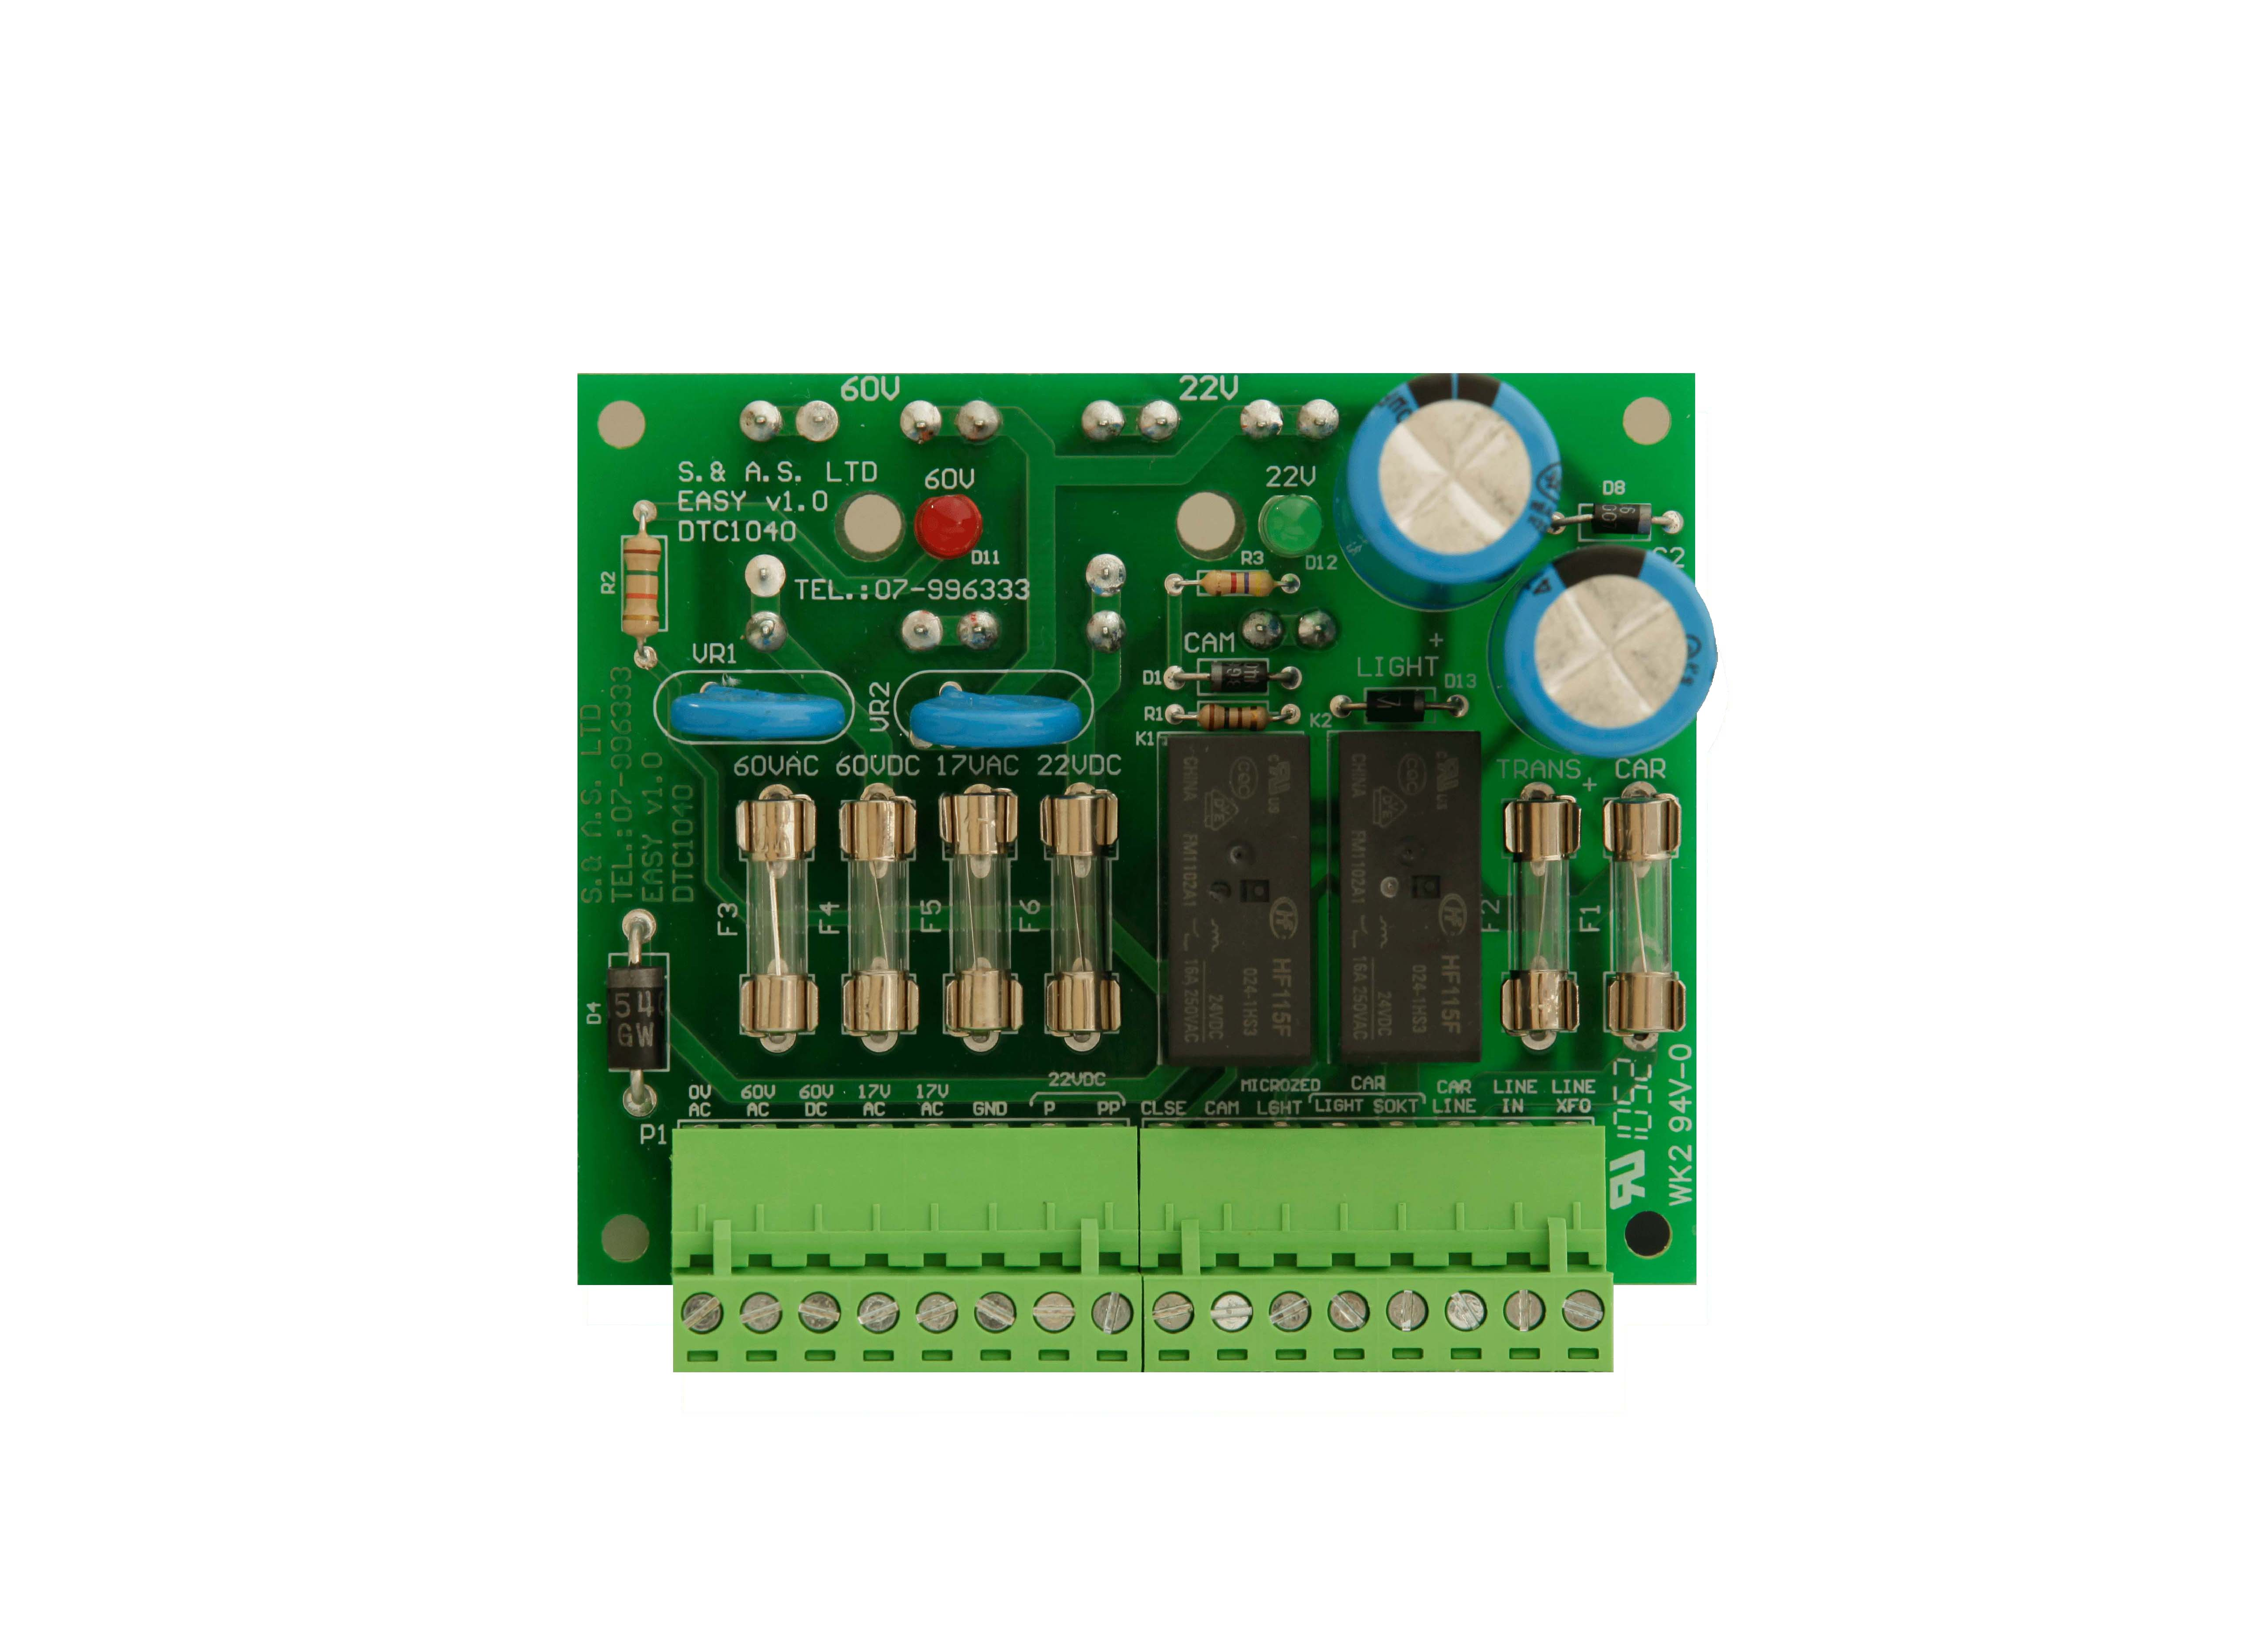 RECTIFIER  BOARD FOR  DC  SUPPLIES WITH  FUSES AND RELAYS</br>EASY